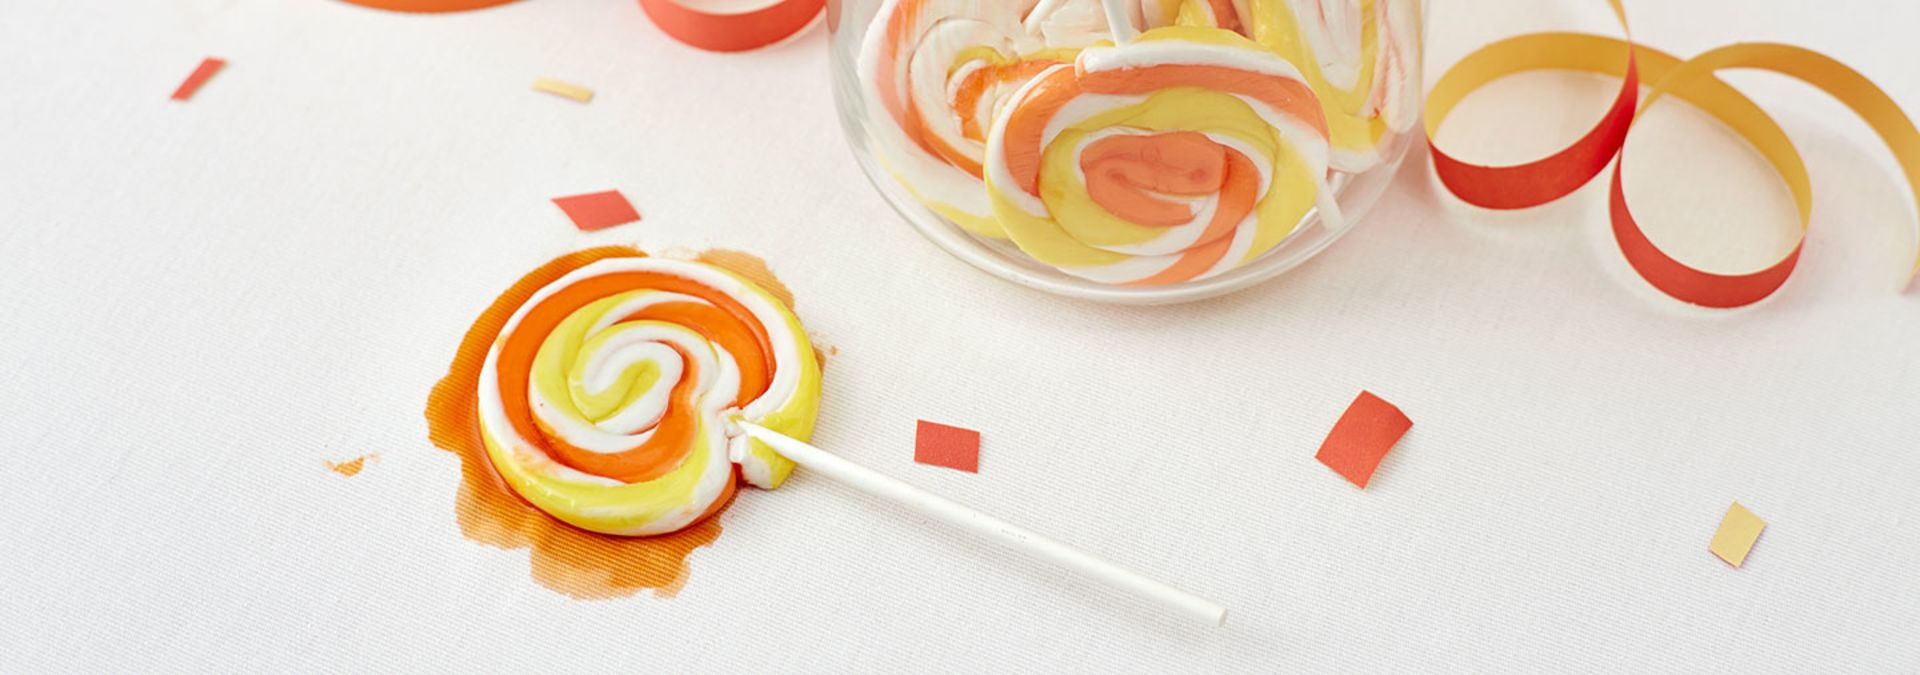 Melted swirl lollipop on white tablecloth